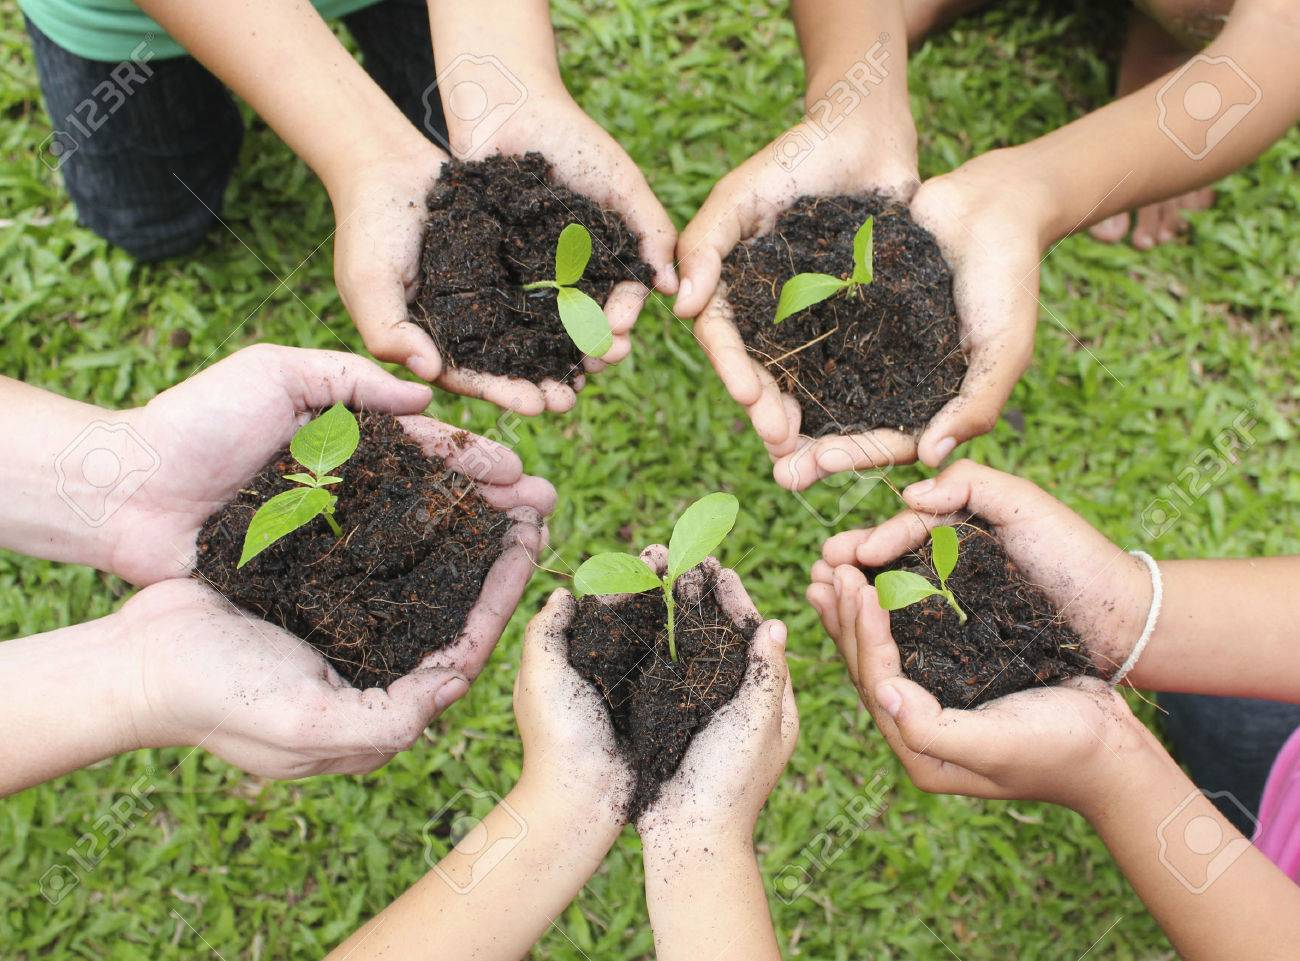 Hands holding sapling in soil surface - 51868113